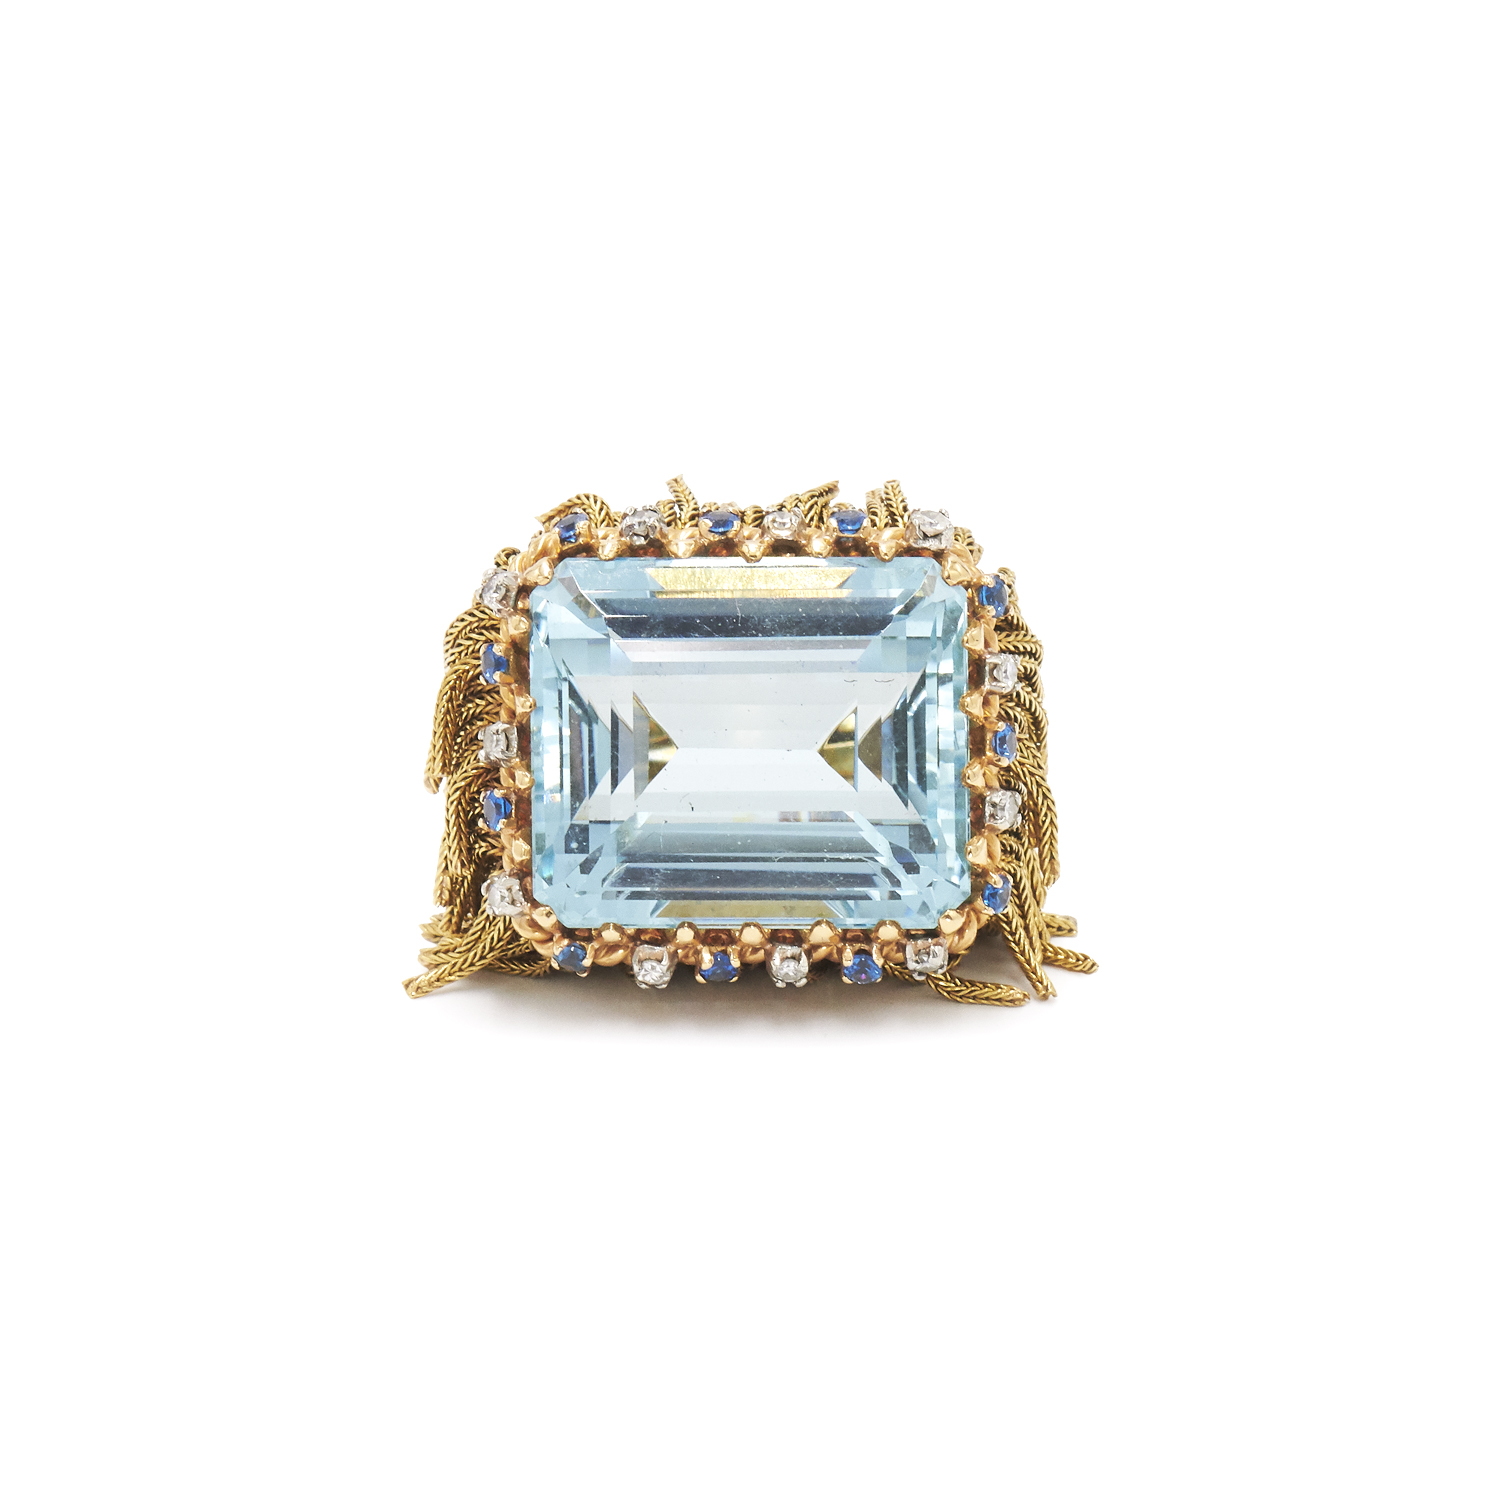 1950s 18K Yellow Gold Aquamarine Fringe Ring Style R-41117-FL-0-0